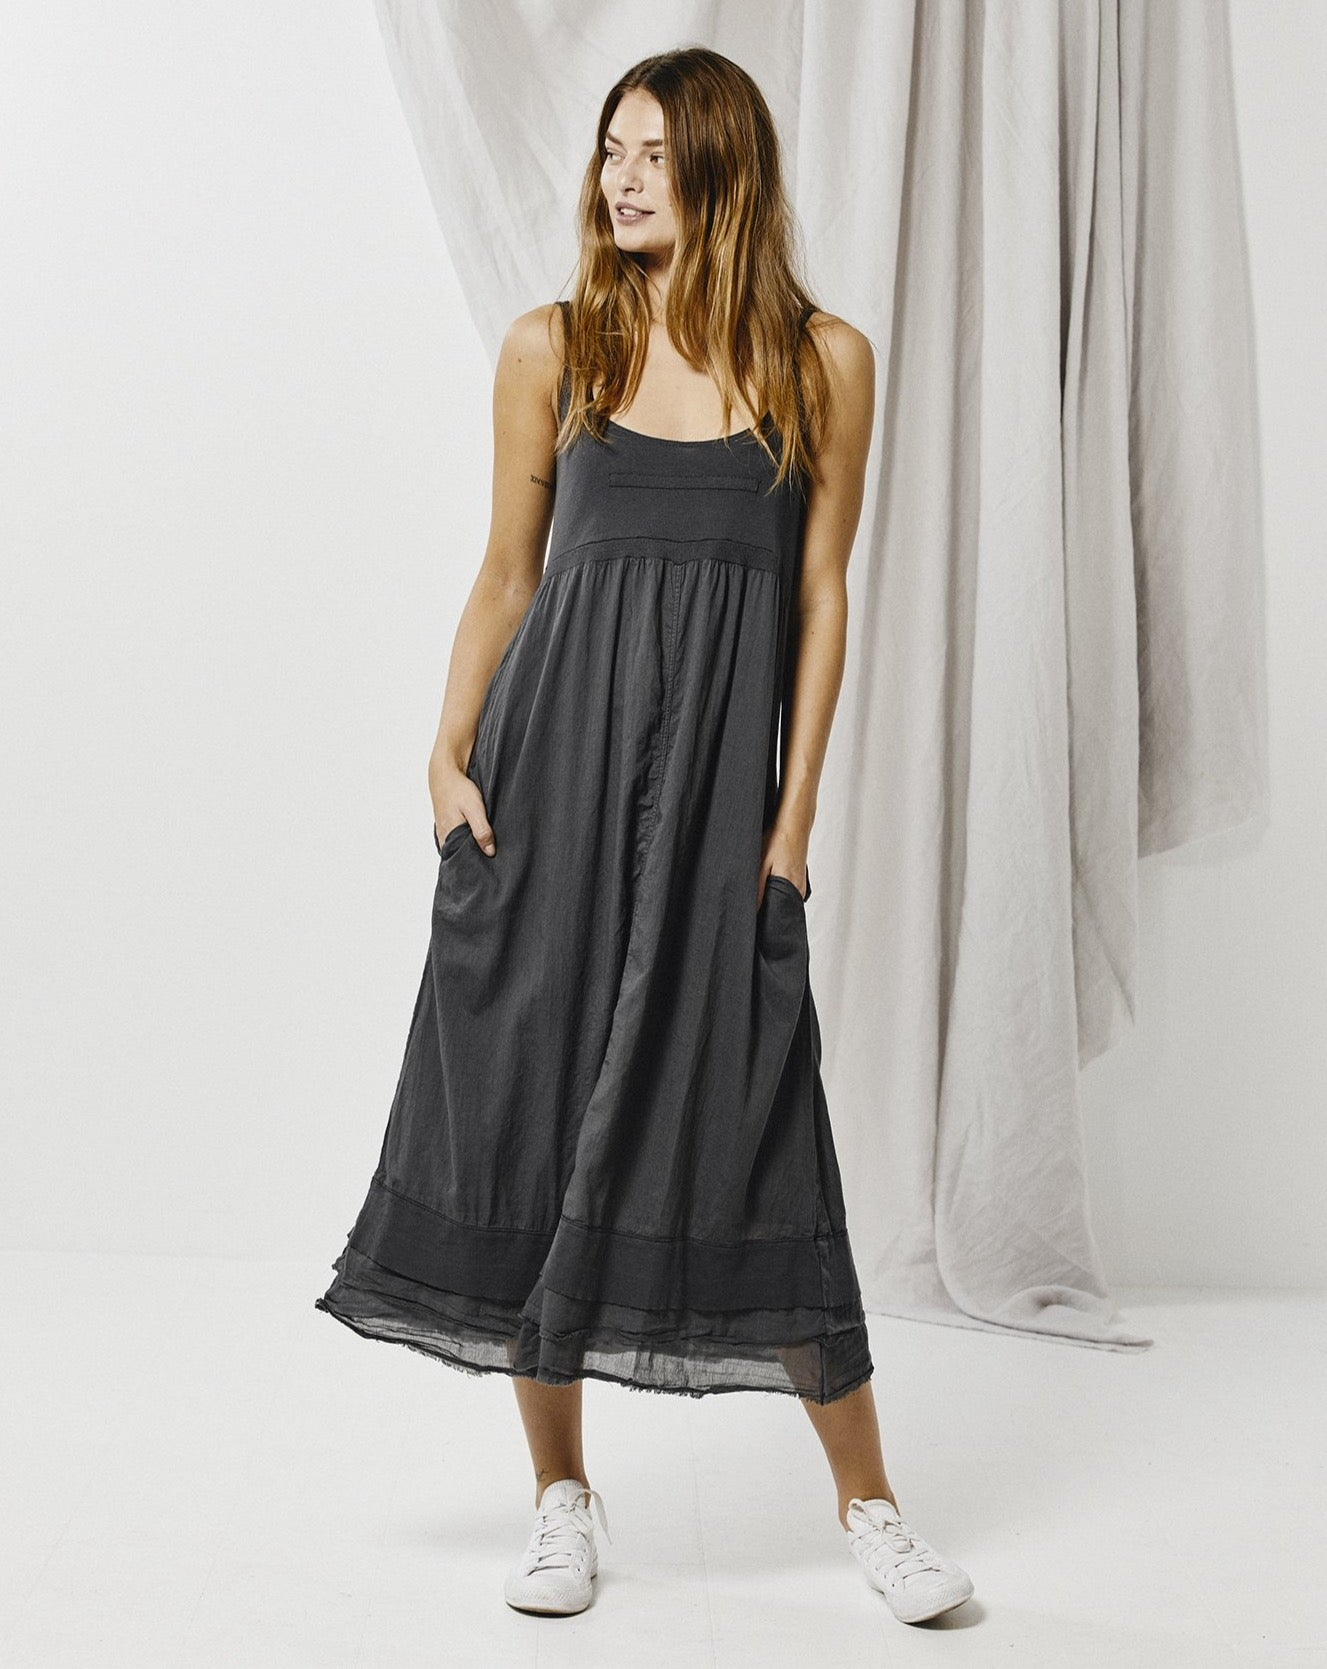 Cotton Strap Dress